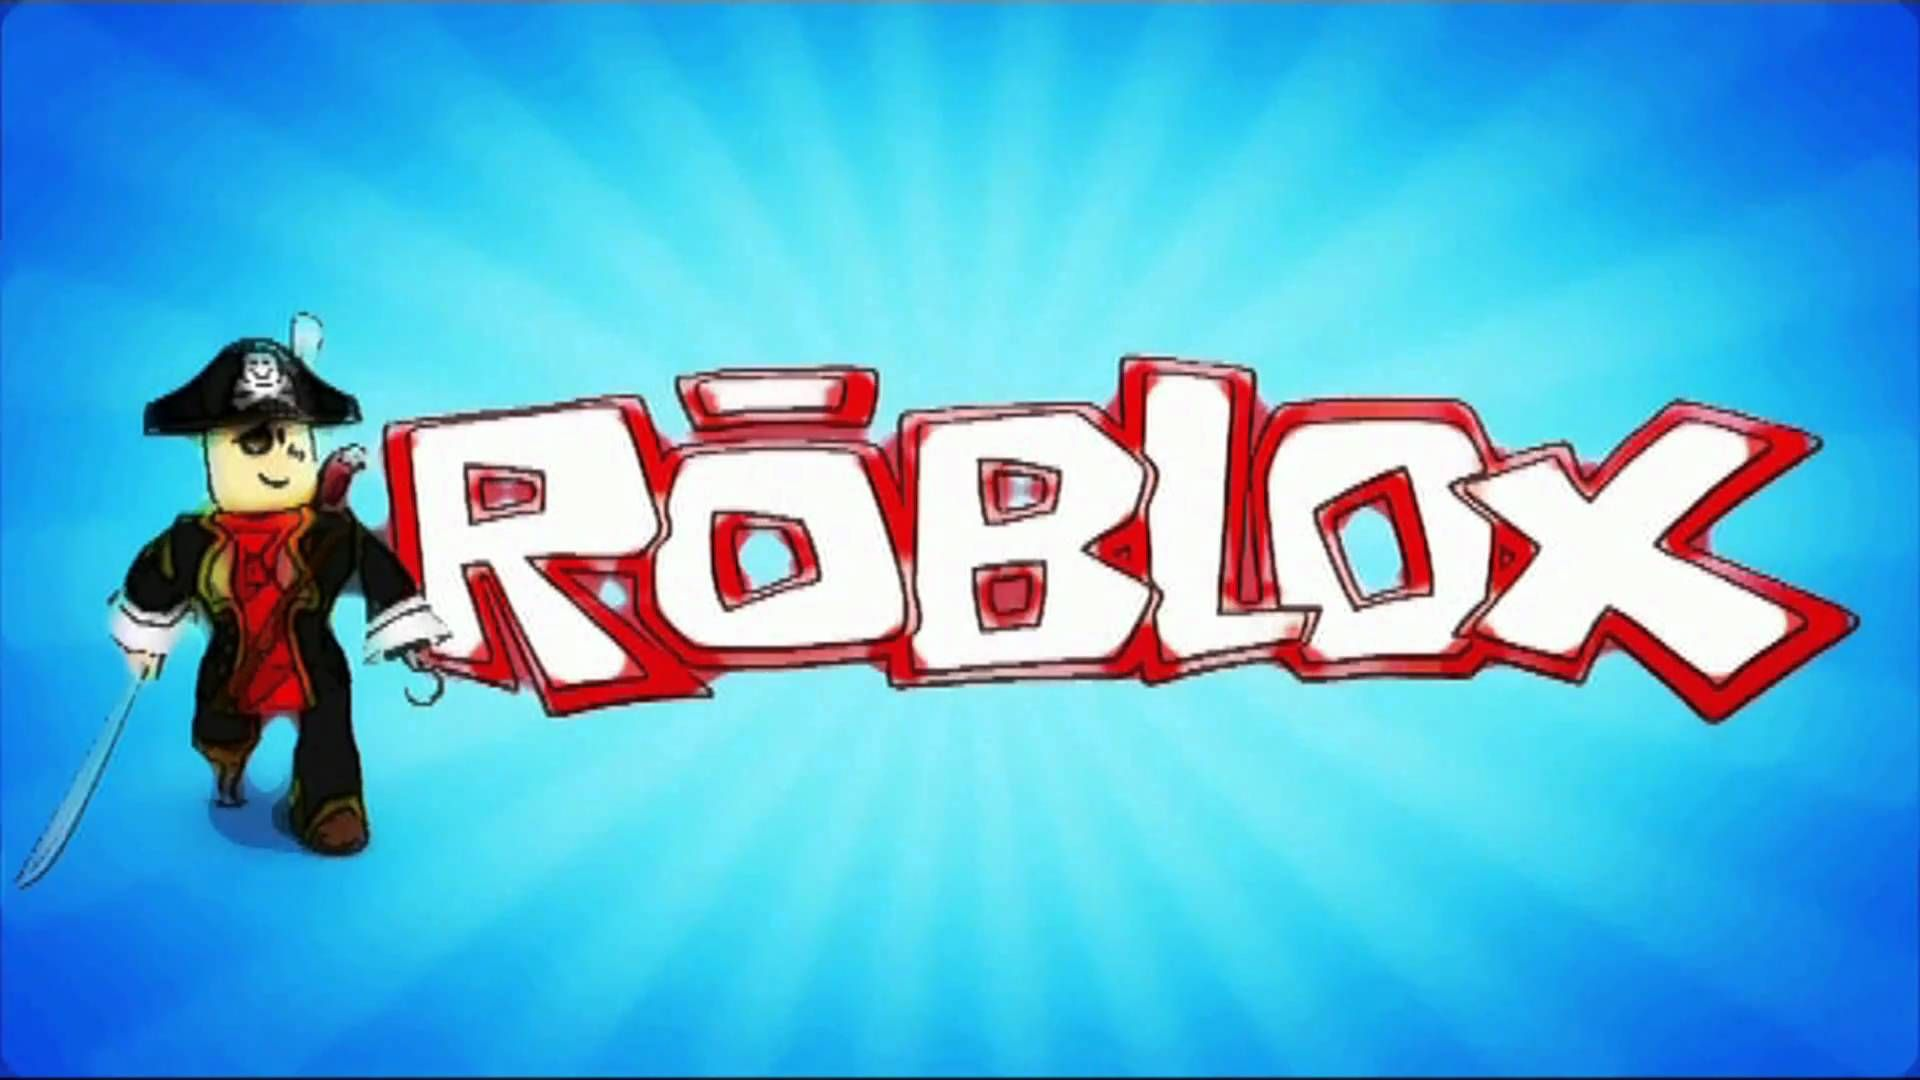 What The Heck Is This And Why Is It On Youtube Roblox - Roblox Intro Finished Youtube Youtube Hacks Y Legos